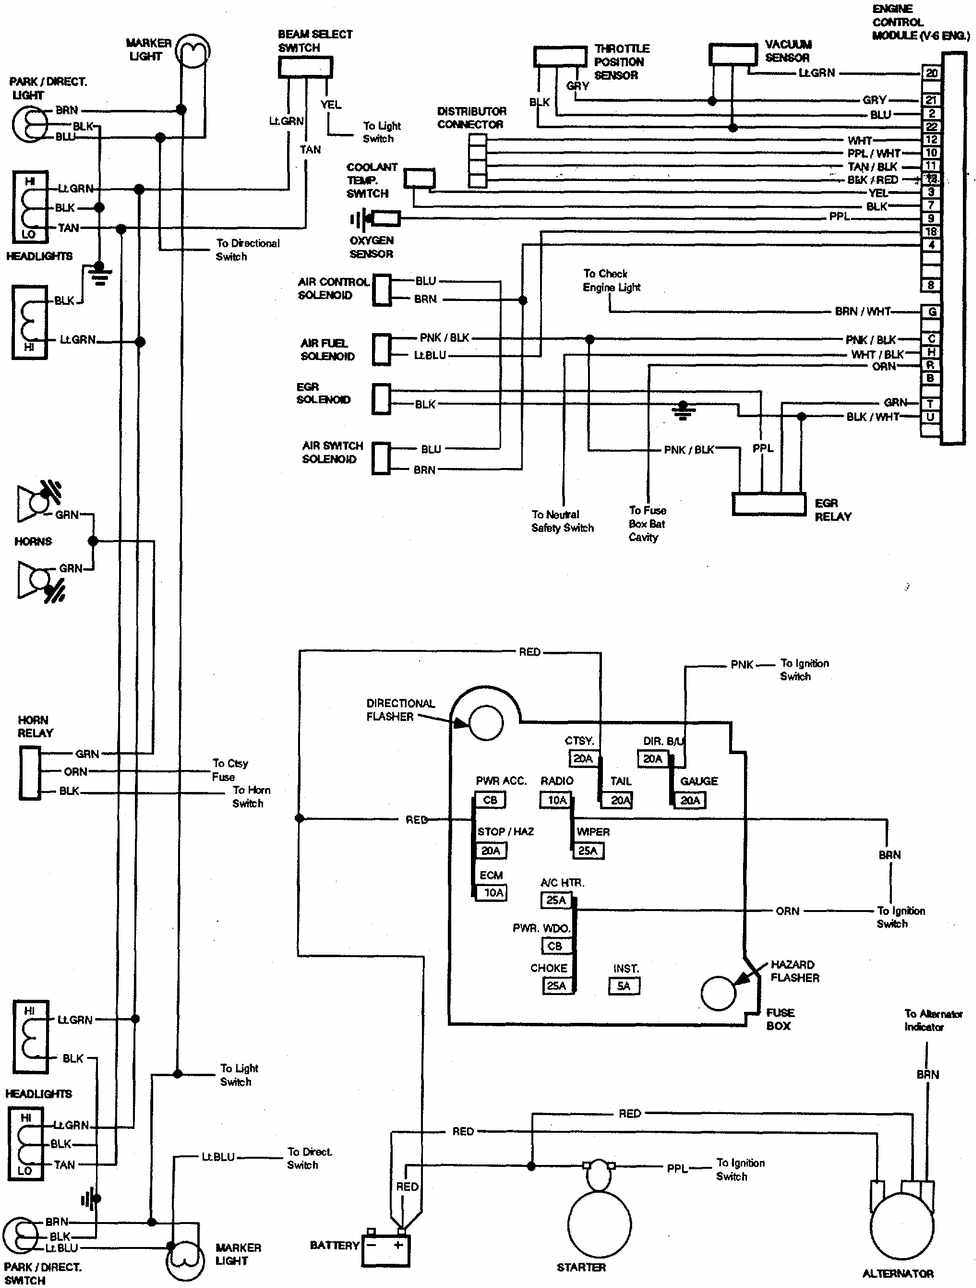 1987 Mustang Wiring Diagram : 27 Wiring Diagram Images